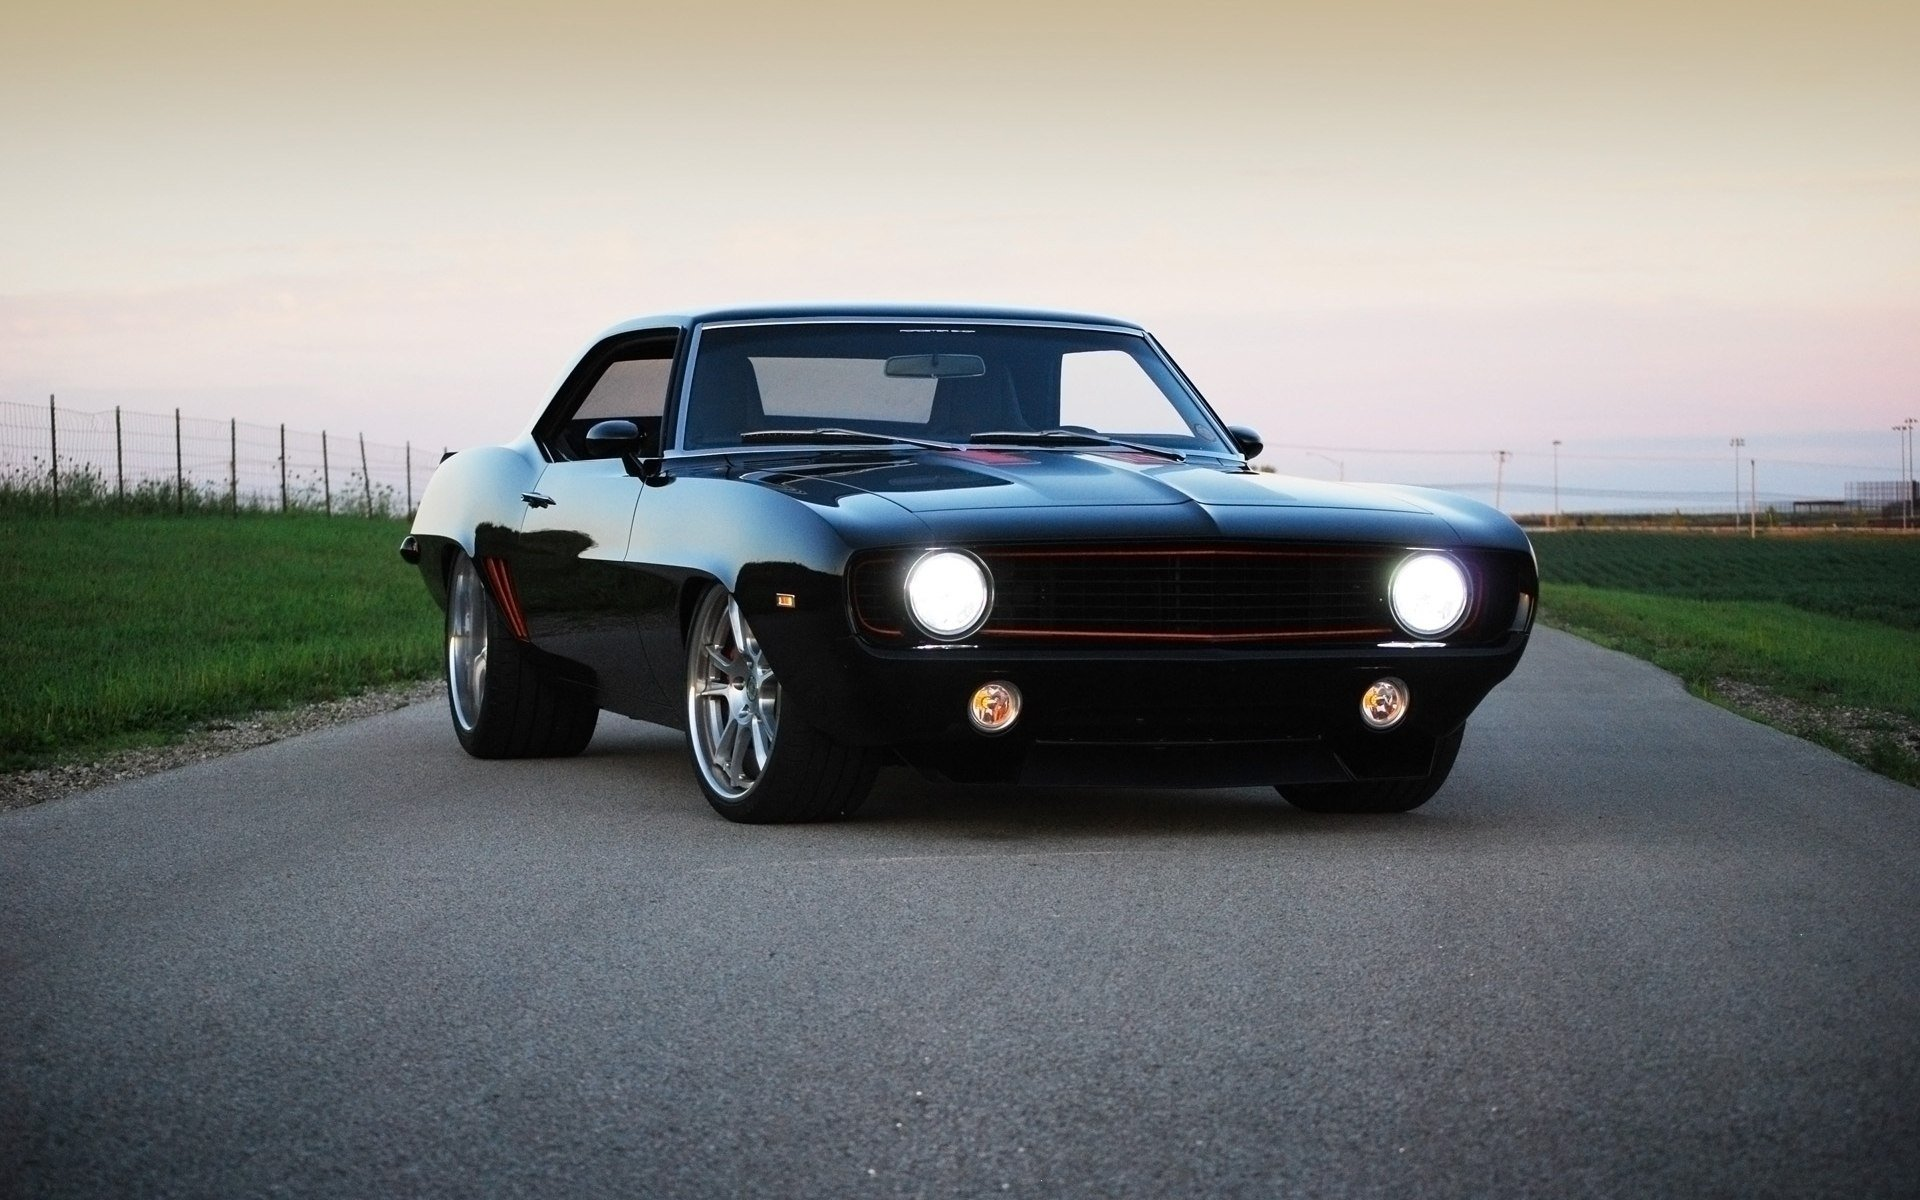 chevrolet camaro classic pic wallpapers 61 wallpapers